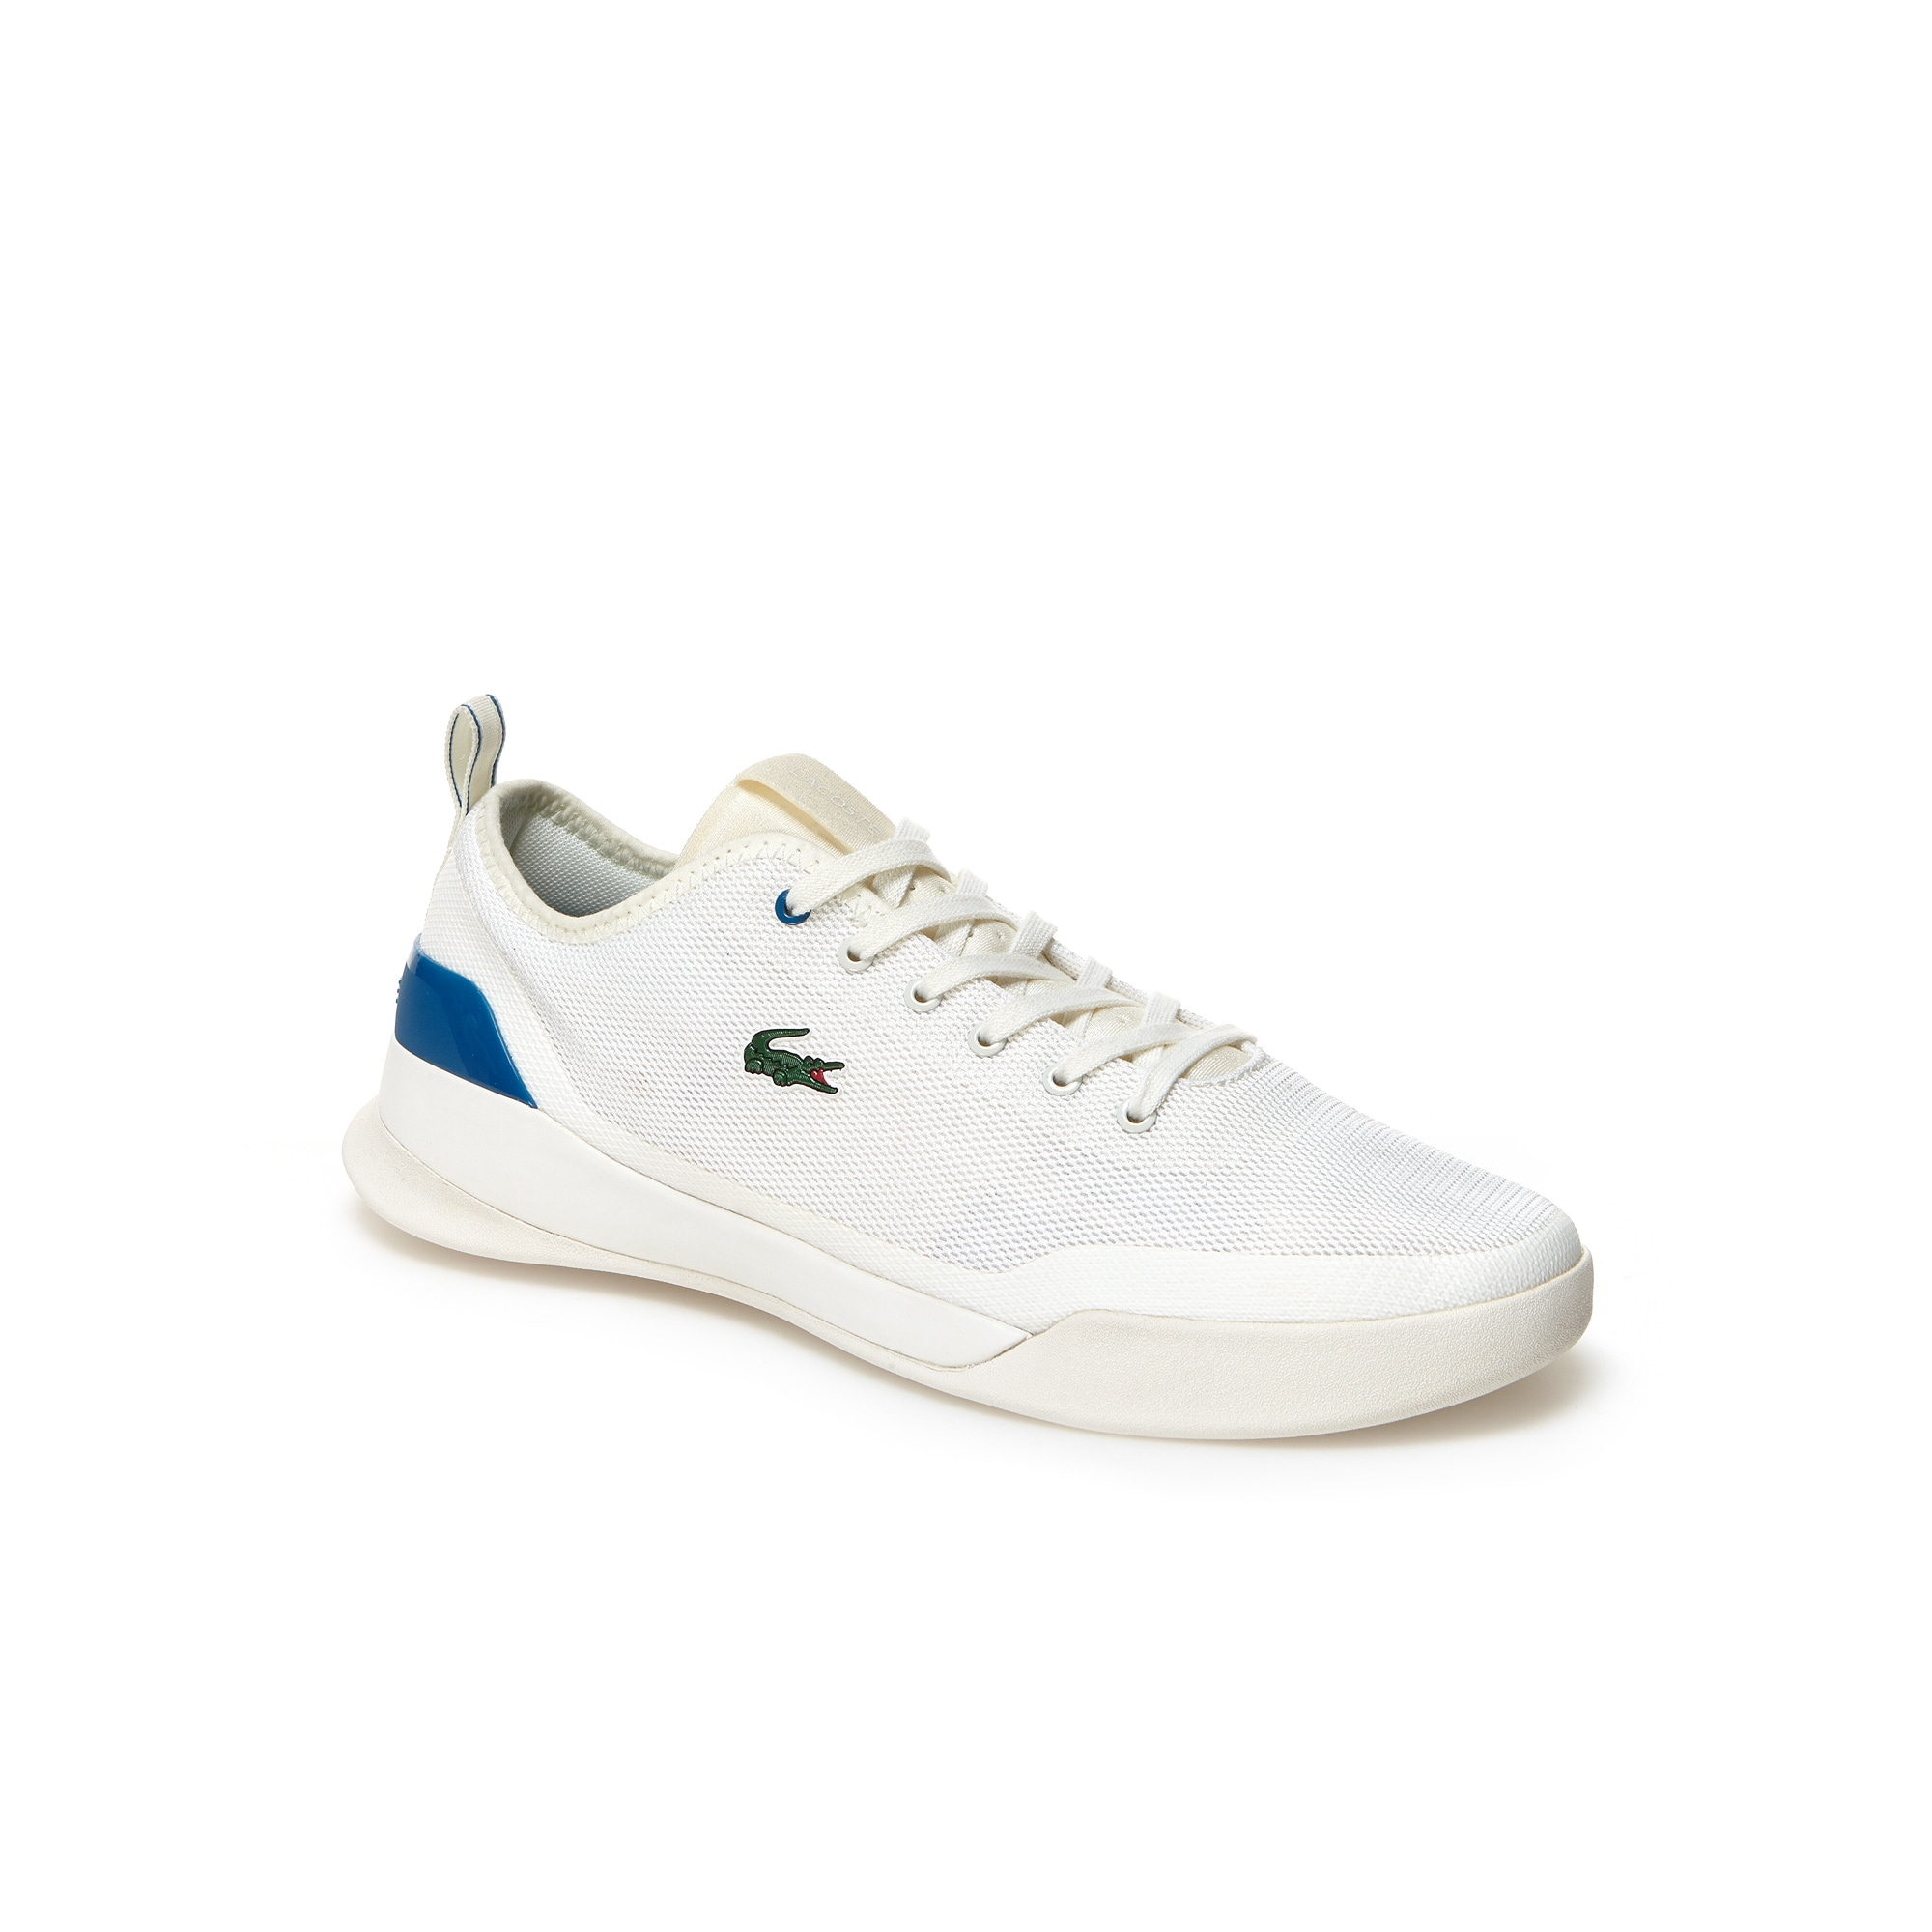 Men's LT Dual Textile Sneakers